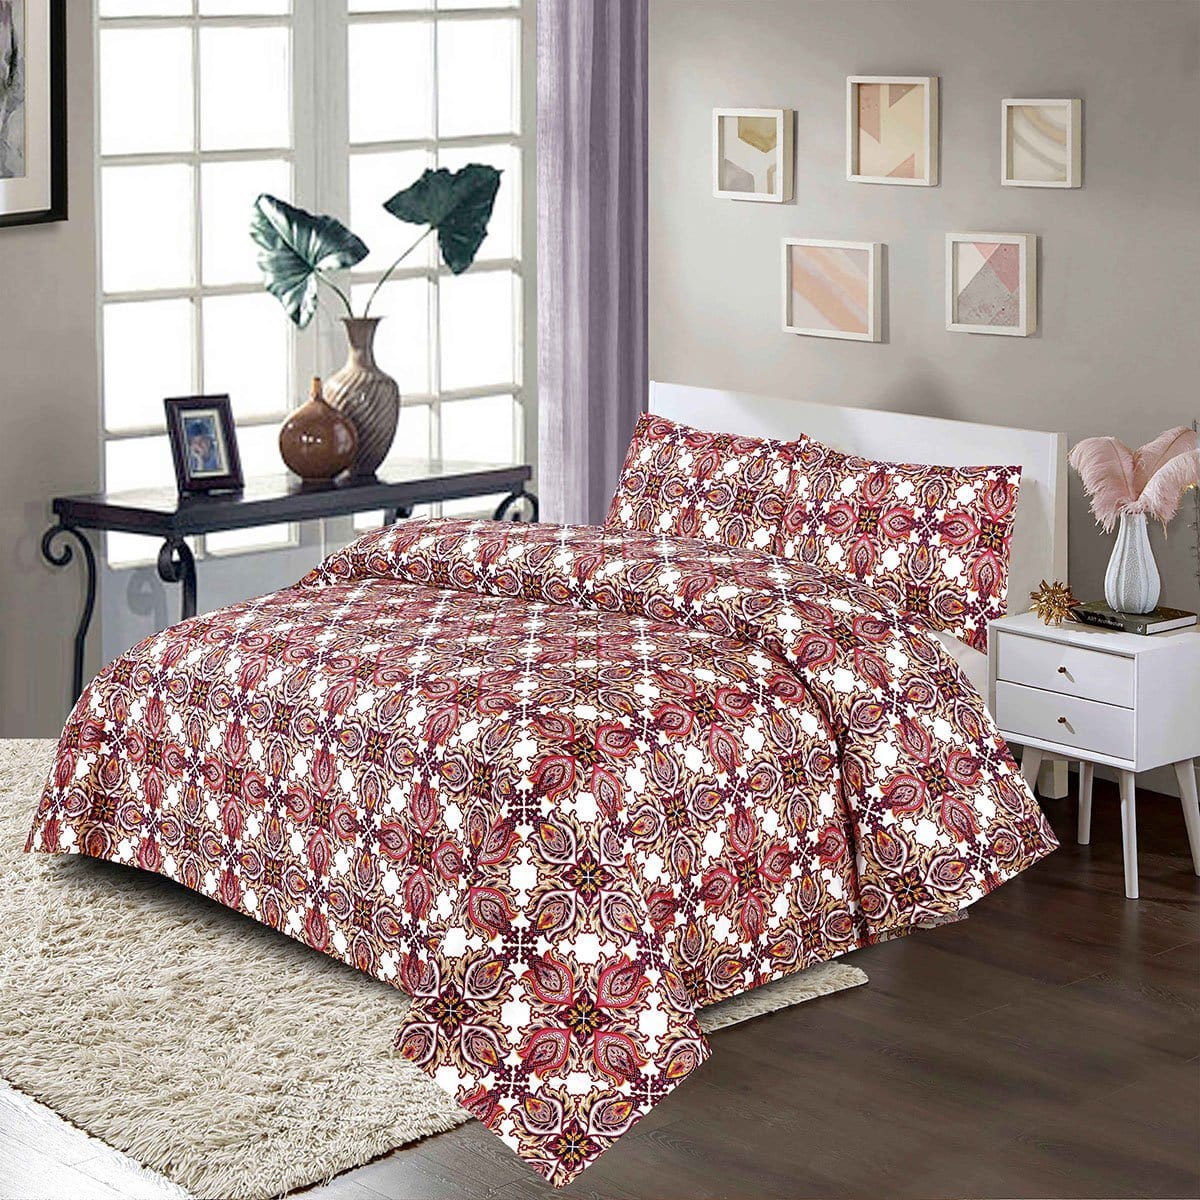 Grace 66 - Reactive cotton Satin Quality king size Bedsheet with 2 pillow covers.